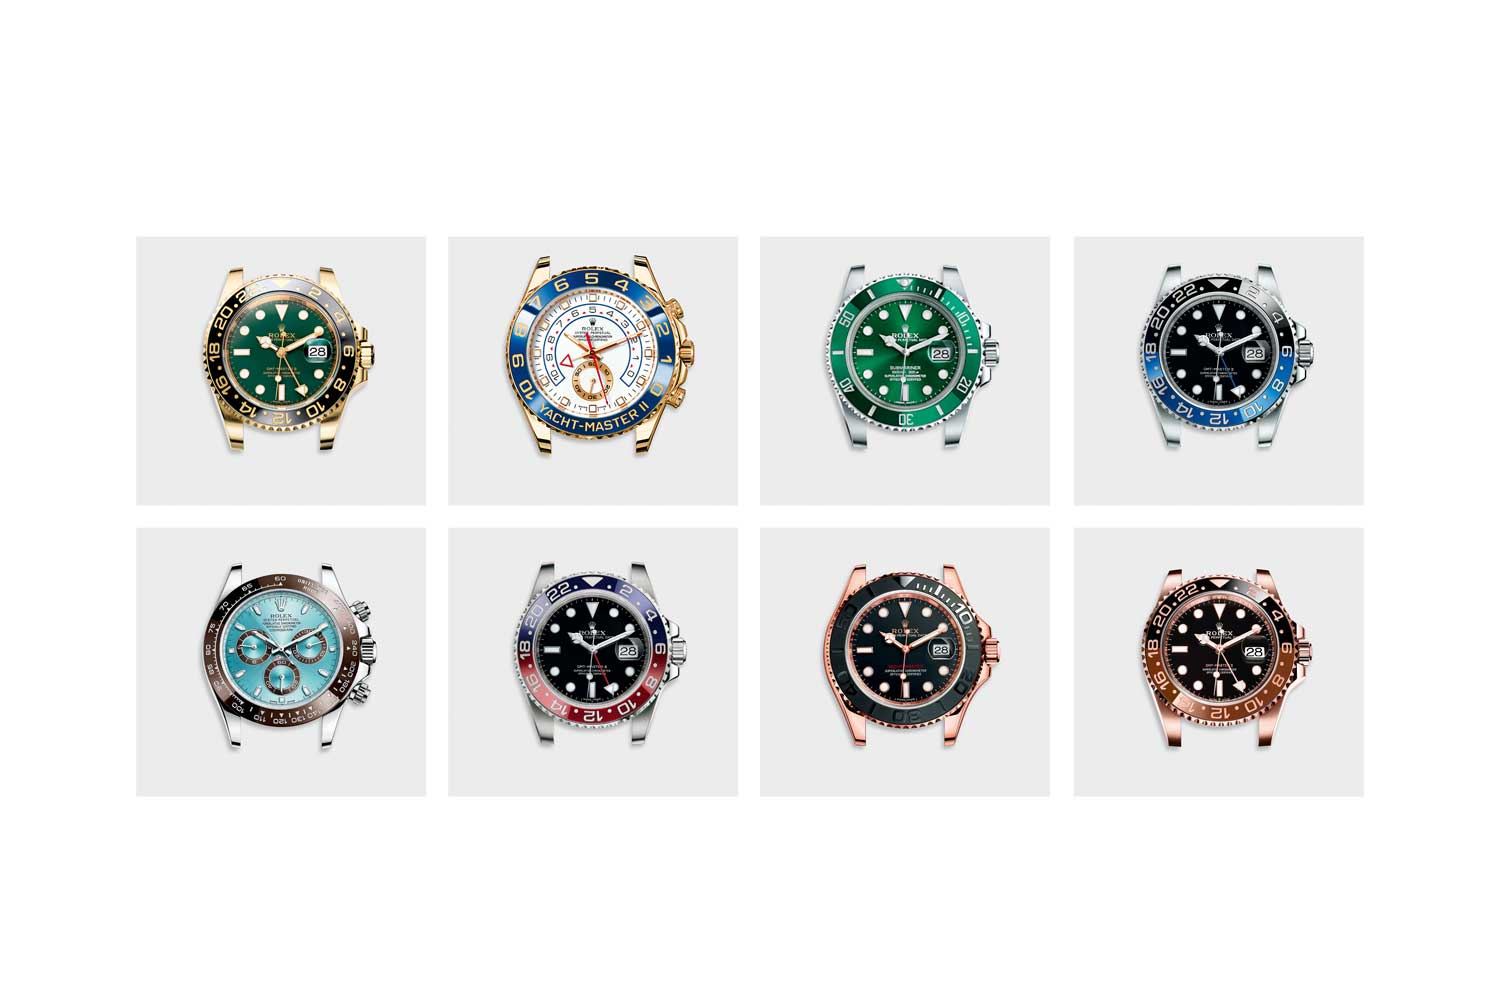 A view of the sheer breadth of colors Rolex is able to achieve using their proprietary method of producing Cerachrome ceramic bezels